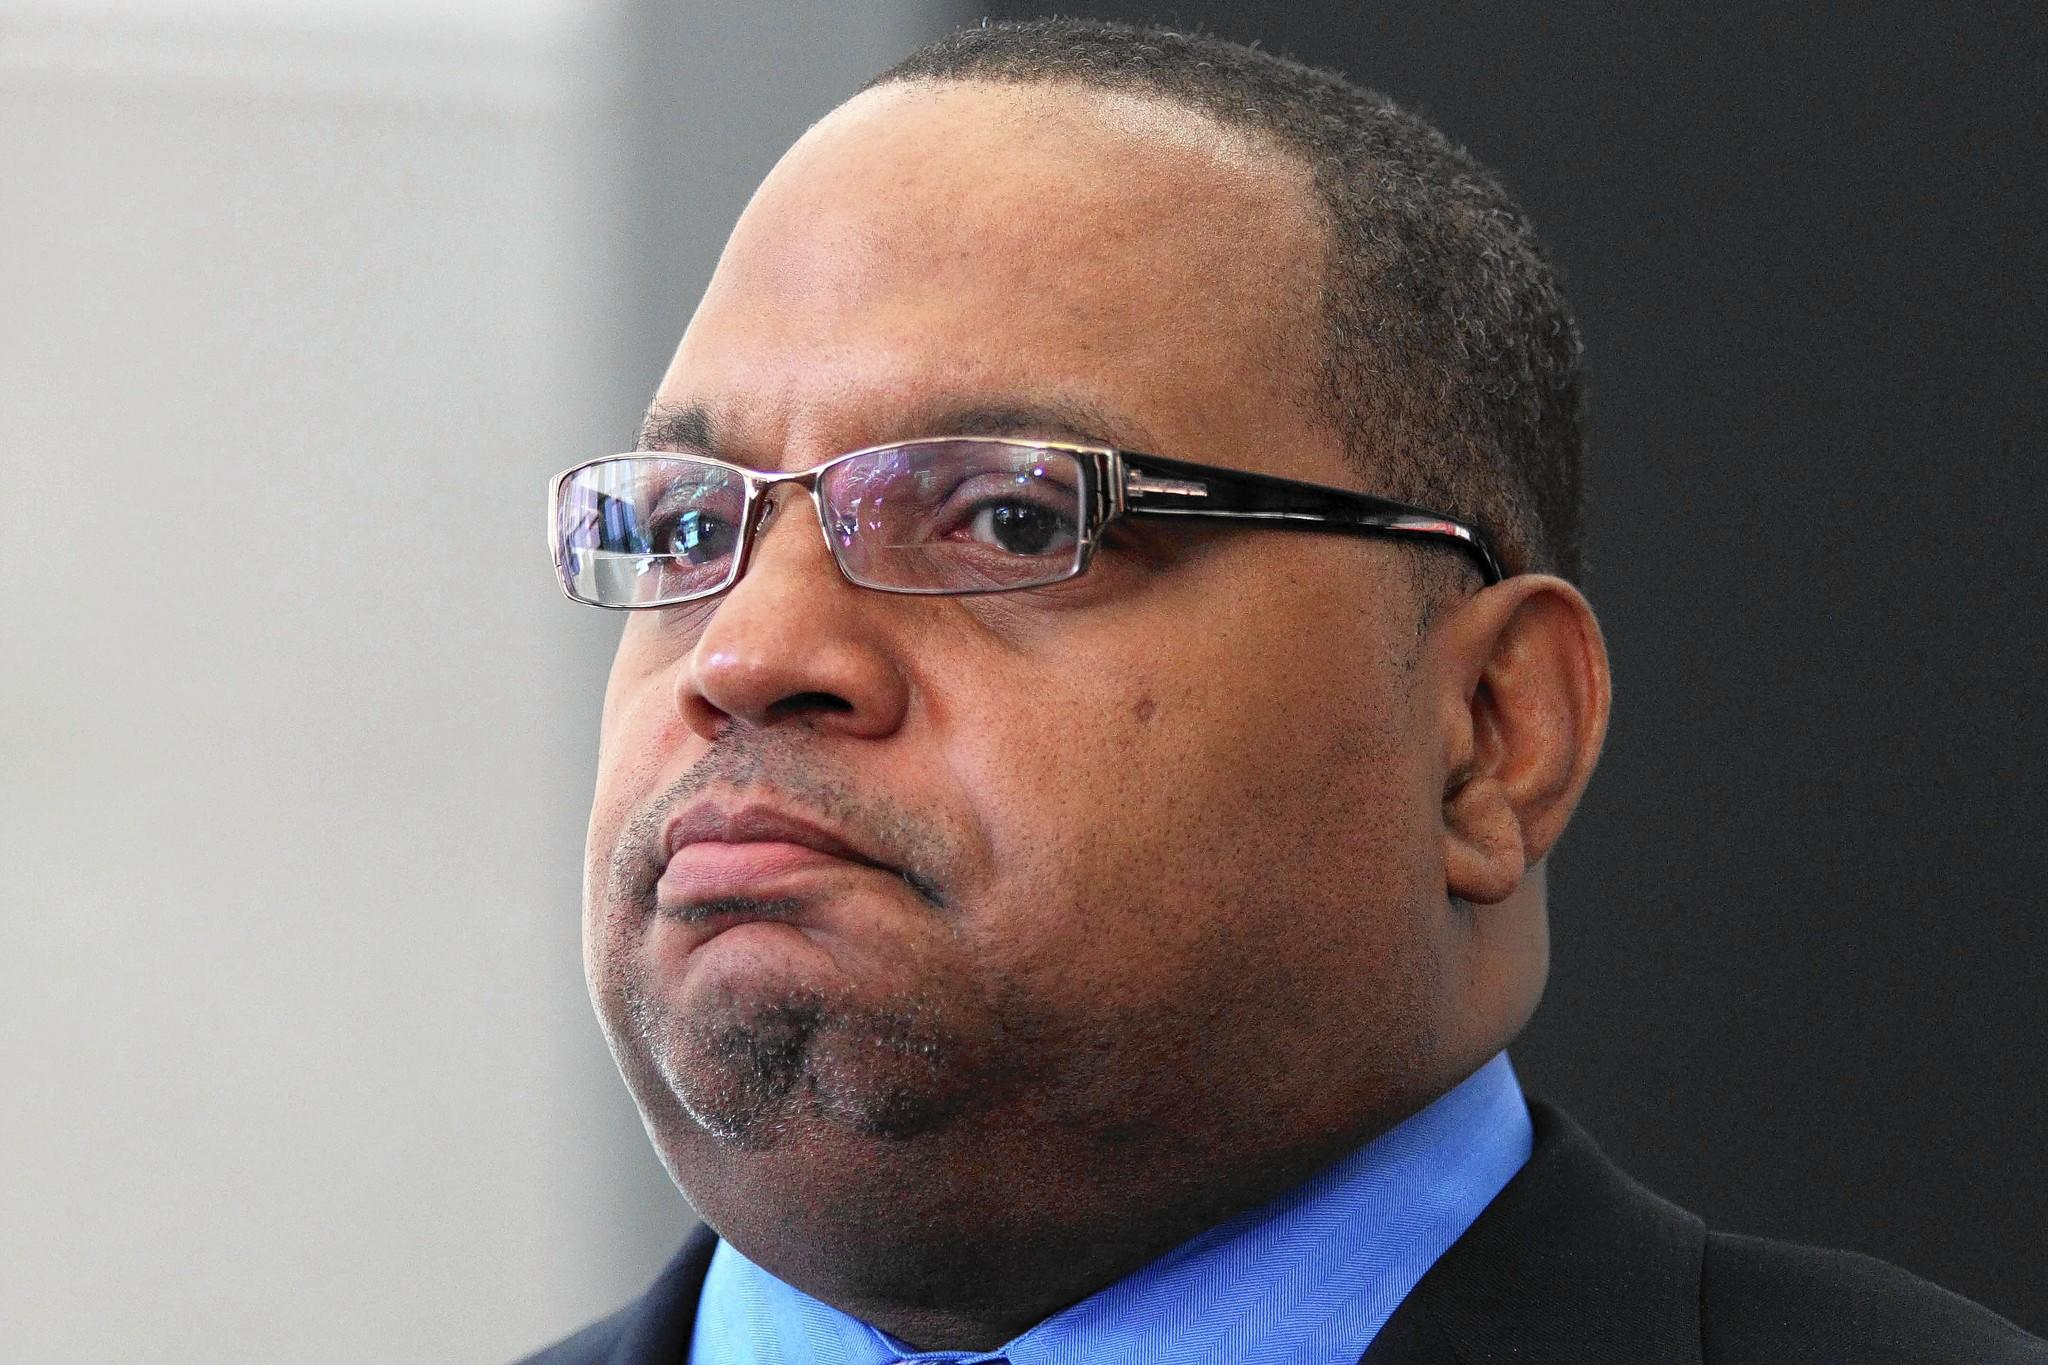 Former West Side Ald. Isaac Carothers after his sentencing on bribery and tax fraud charges at the Dirksen U.S. Courthouse on June 24, 2010. He is by far the best known of five Democrats vying for the 1st District Cook County Board seat being vacated by Earlean Collins.